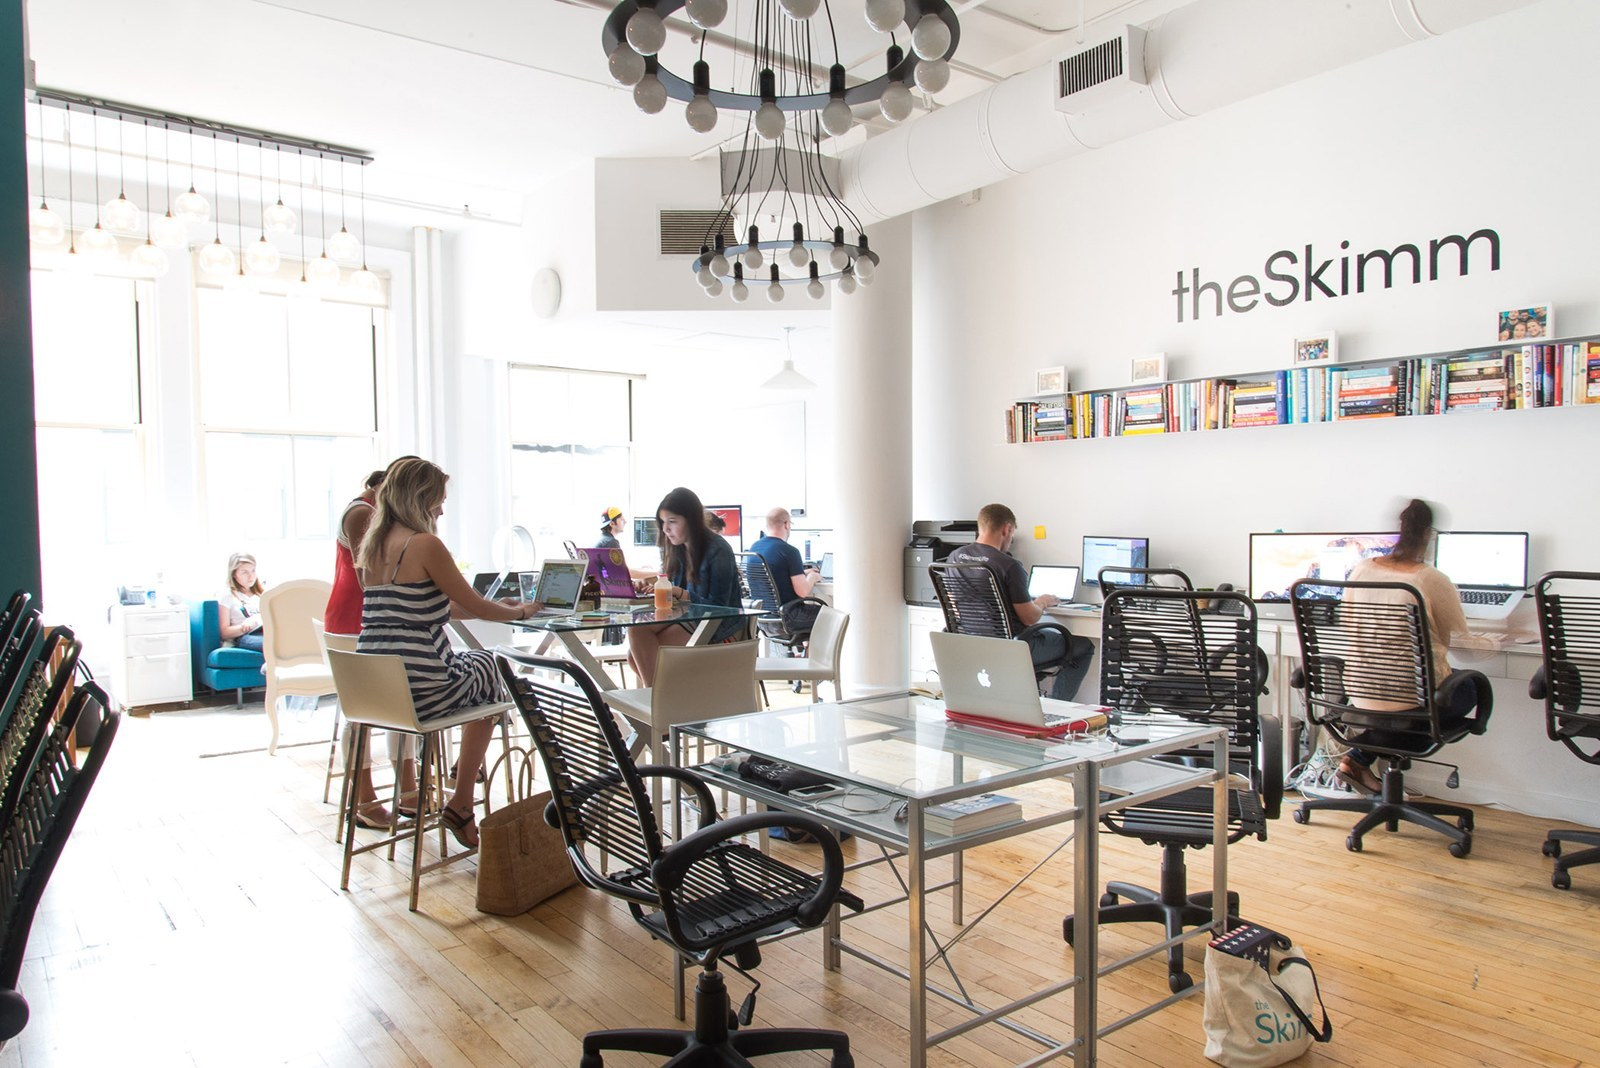 A Tour of theSkimm's Cool New York City Office